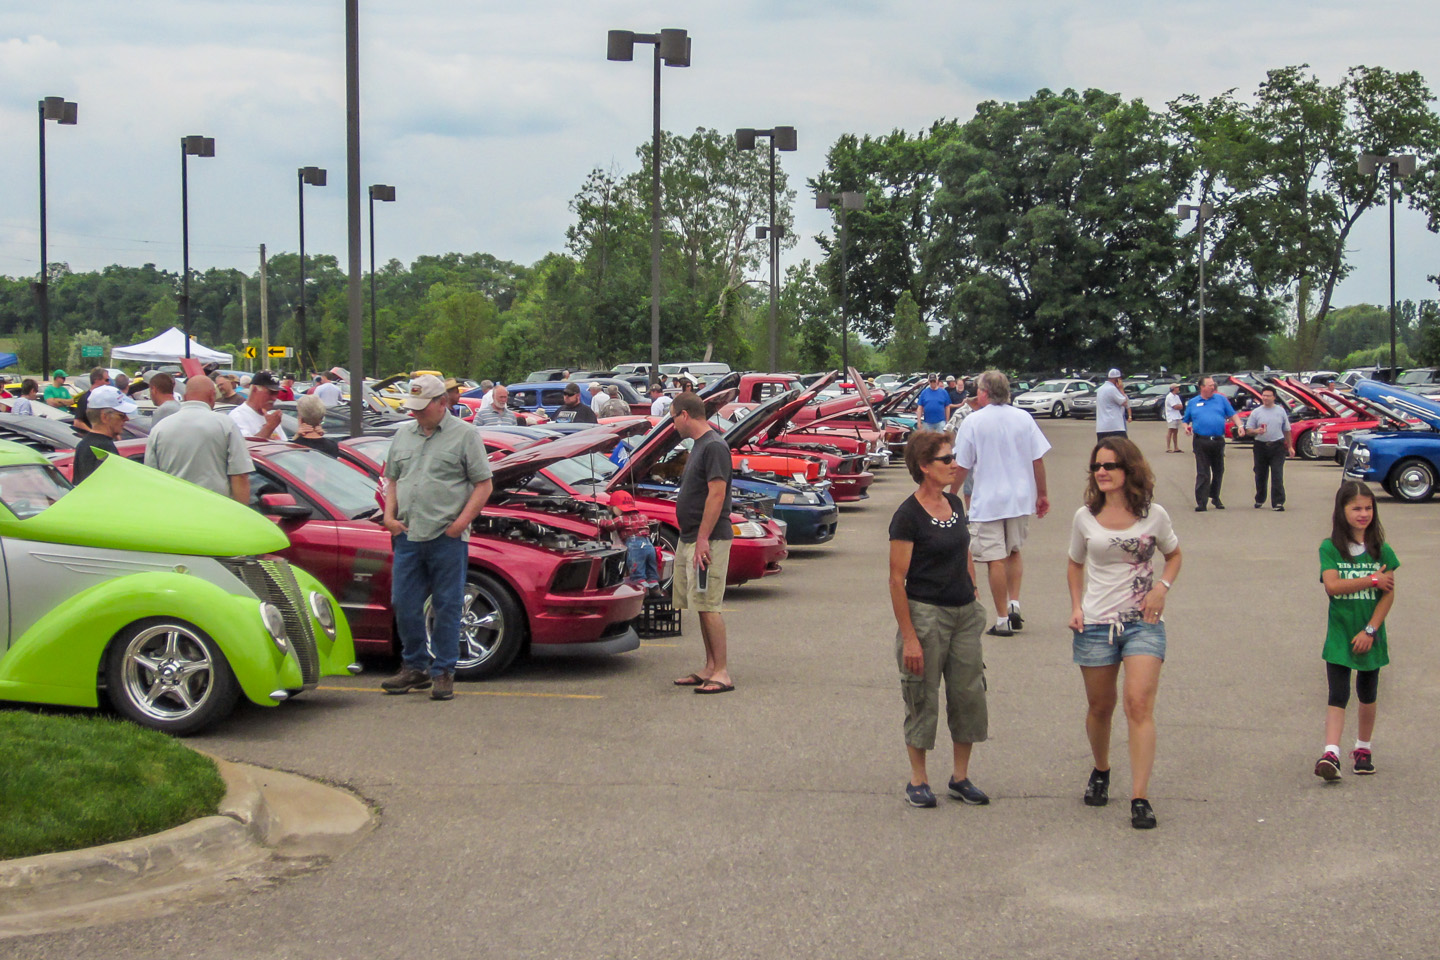 Mustang Owners Club Of Southeastern Michigan - Milford cruise in car show